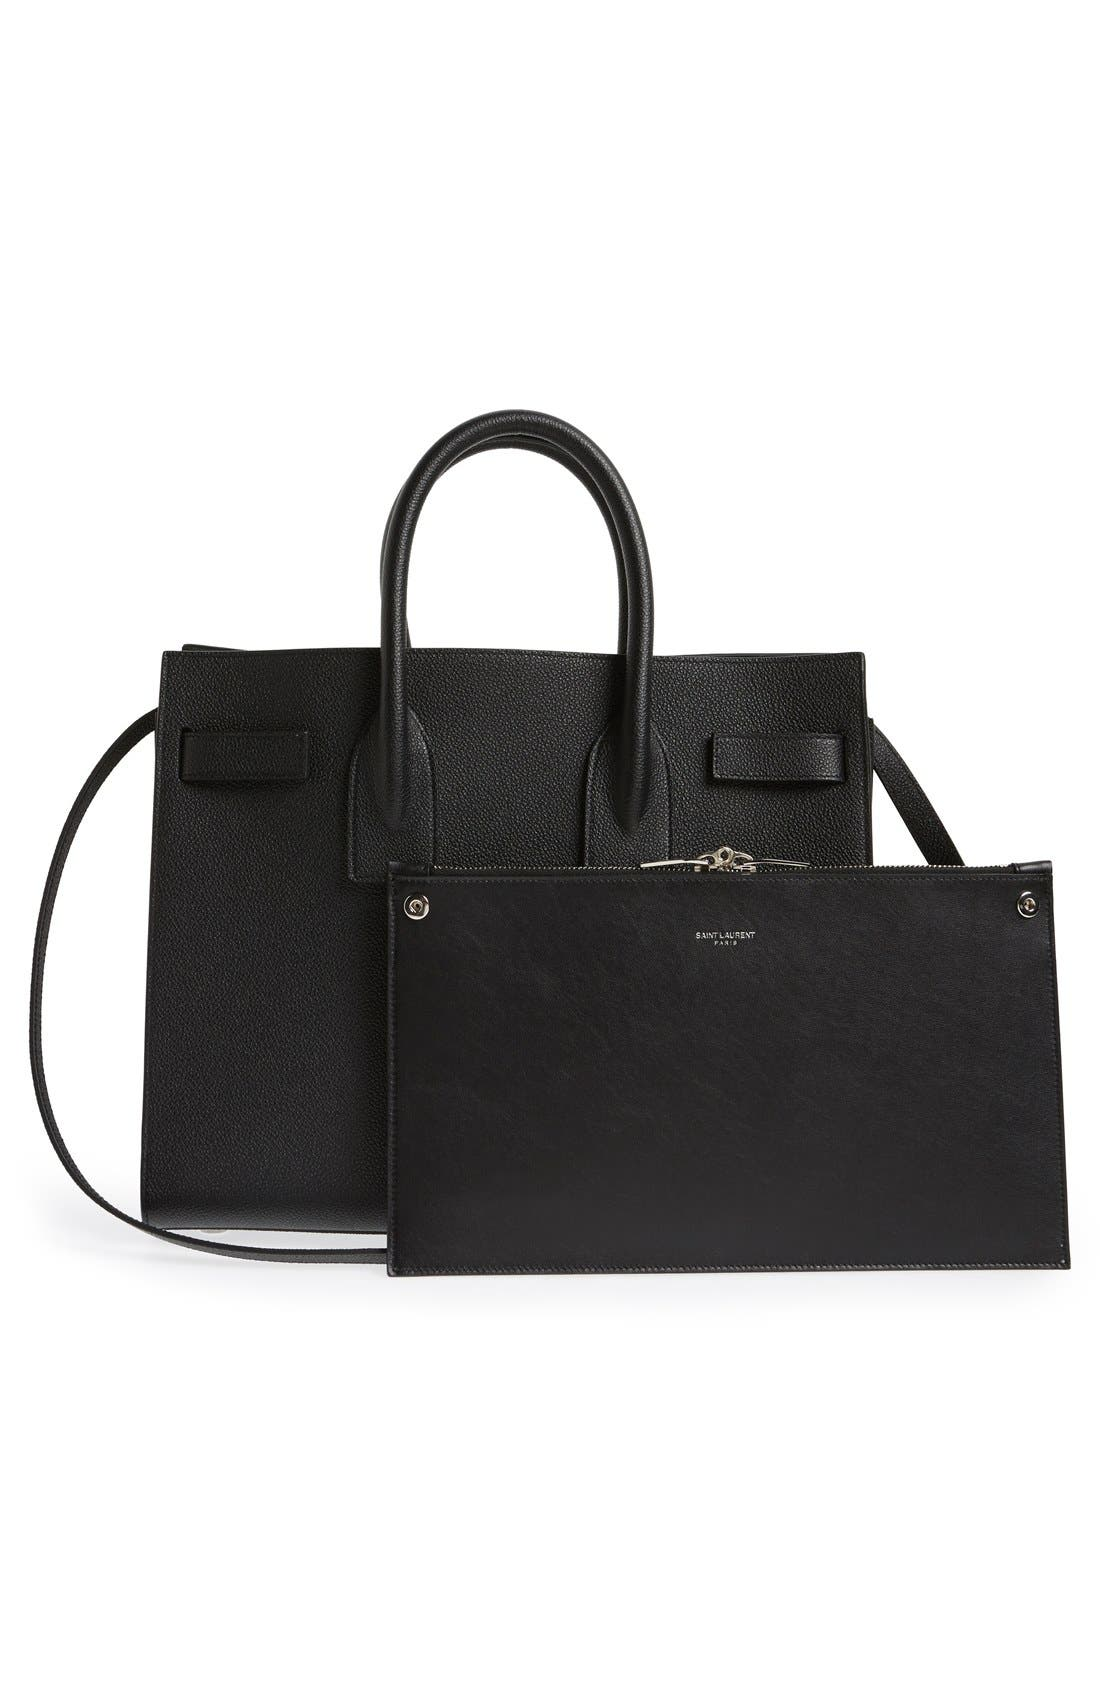 Alternate Image 3  - Saint Laurent 'Small Sac de Jour' Leather Tote